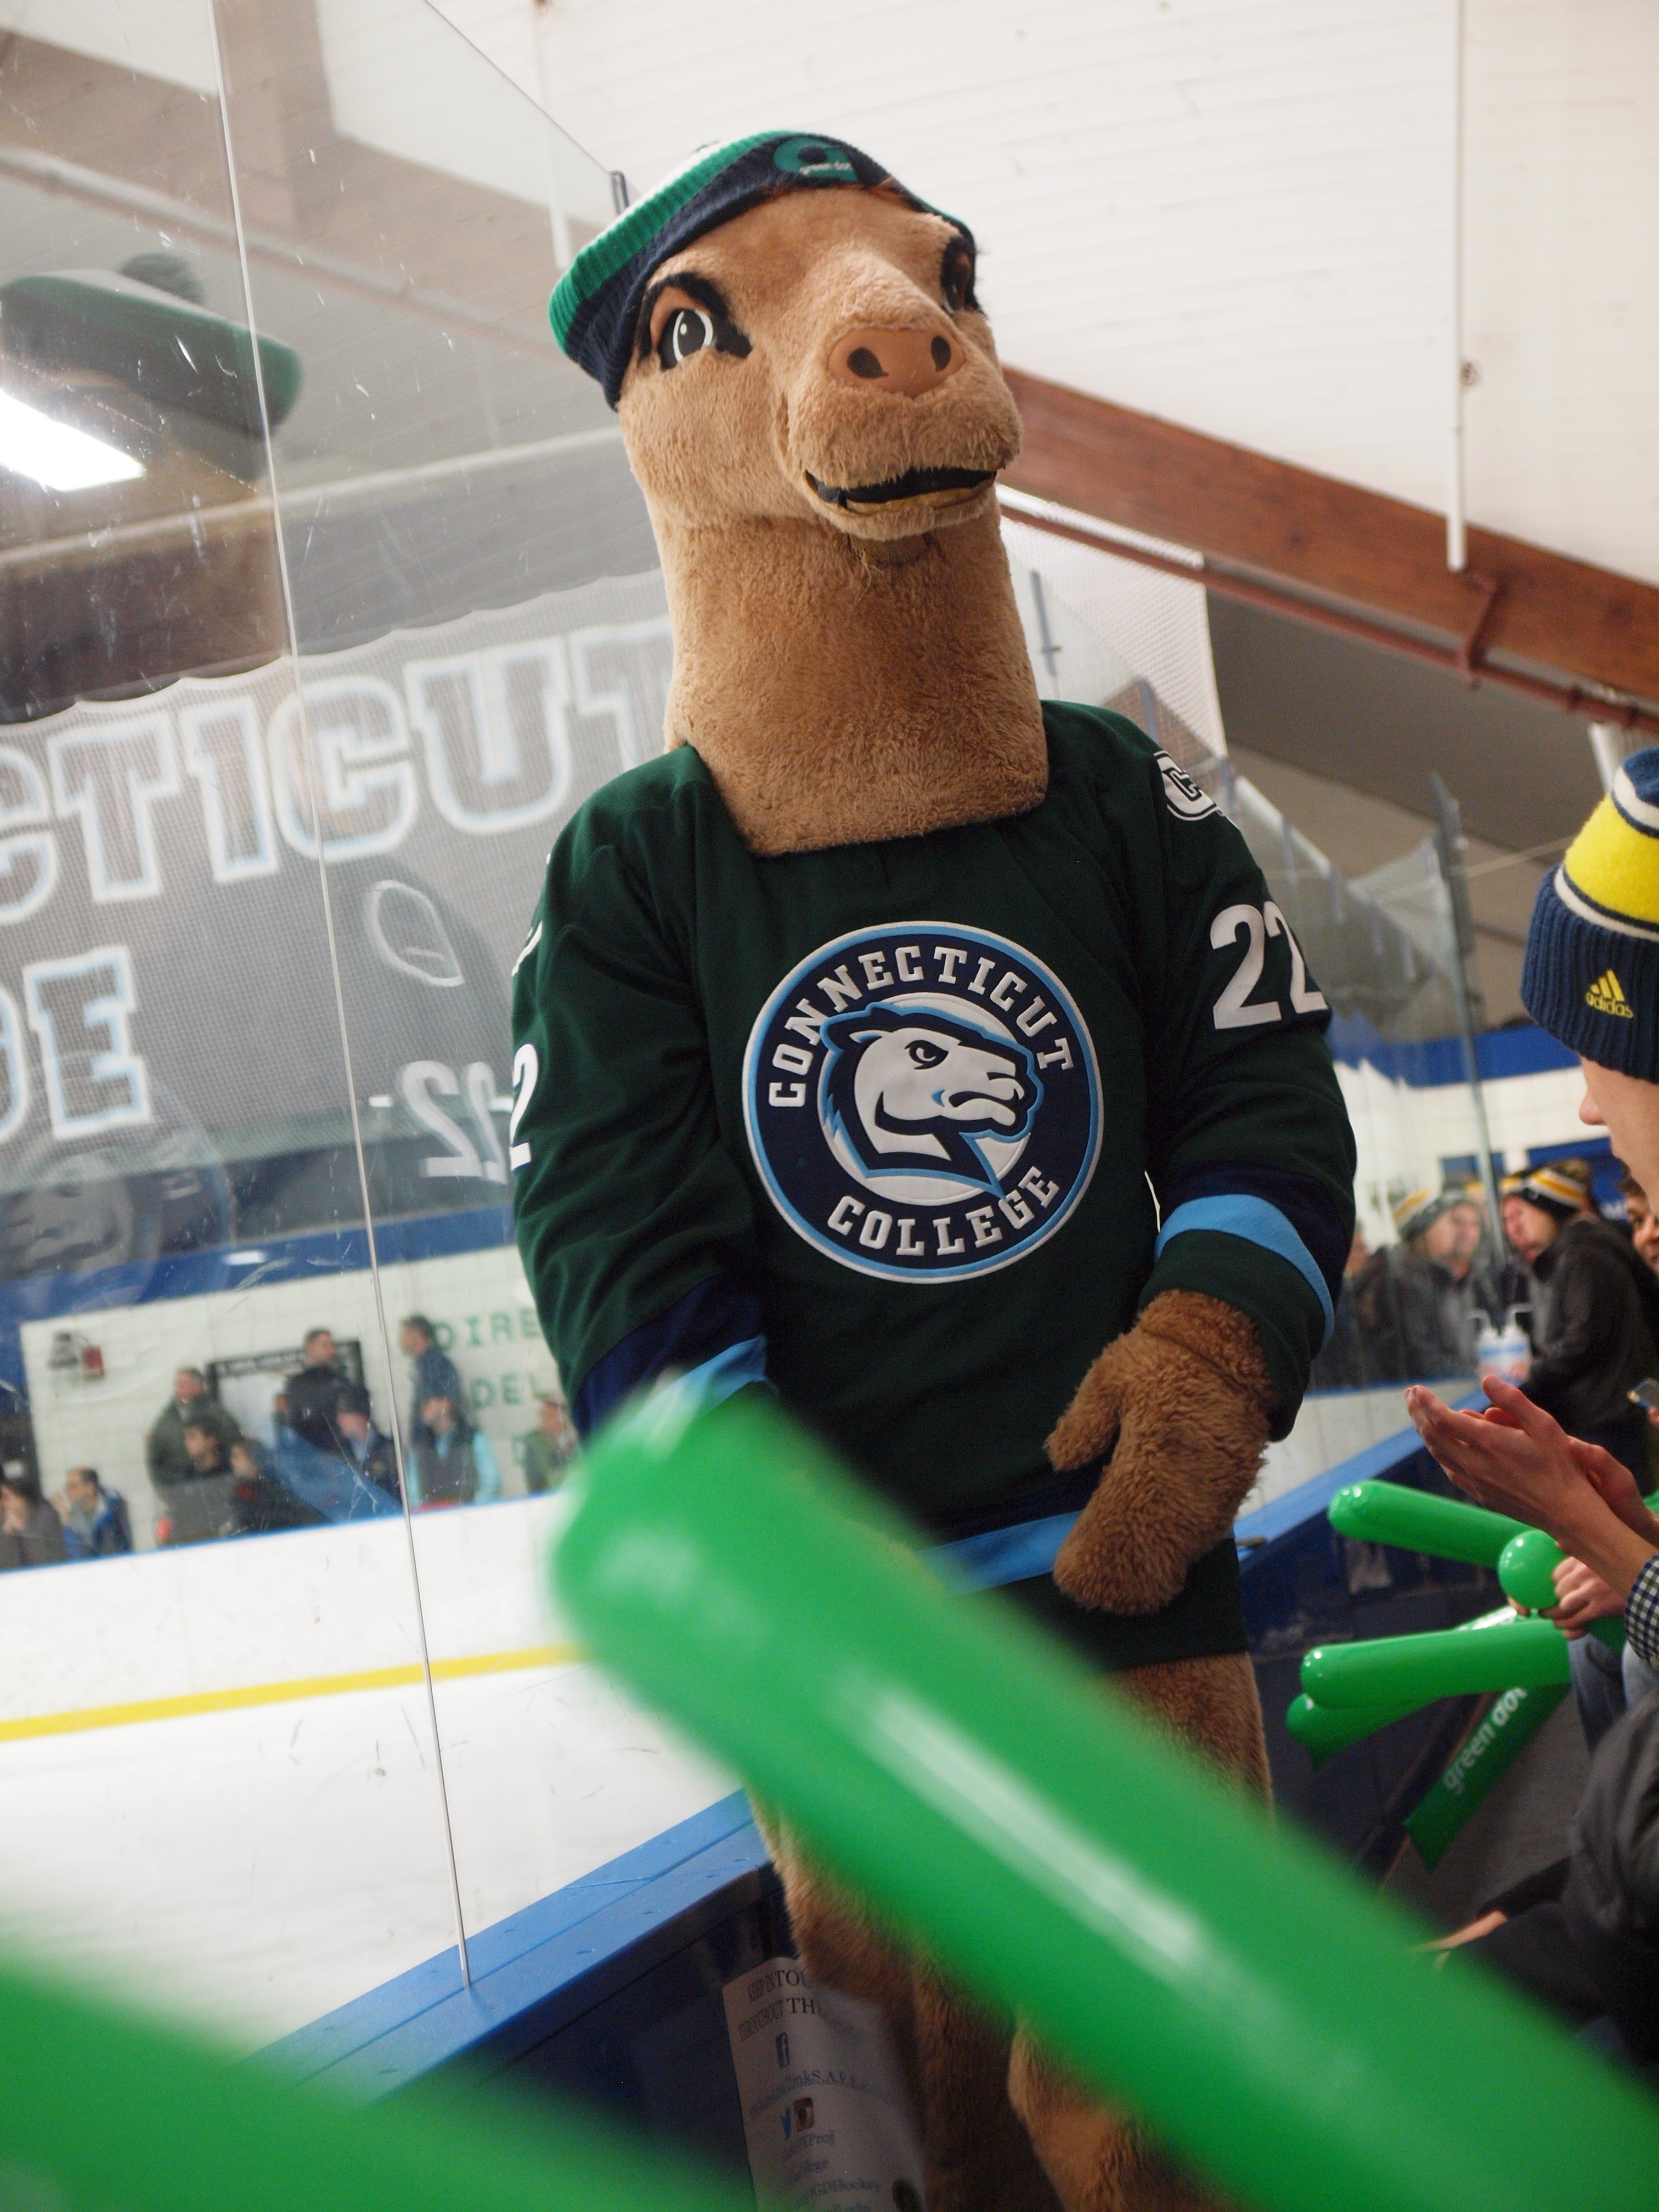 Conncoll's camel mascot wears a green jersey to raise awareness about sexual violence